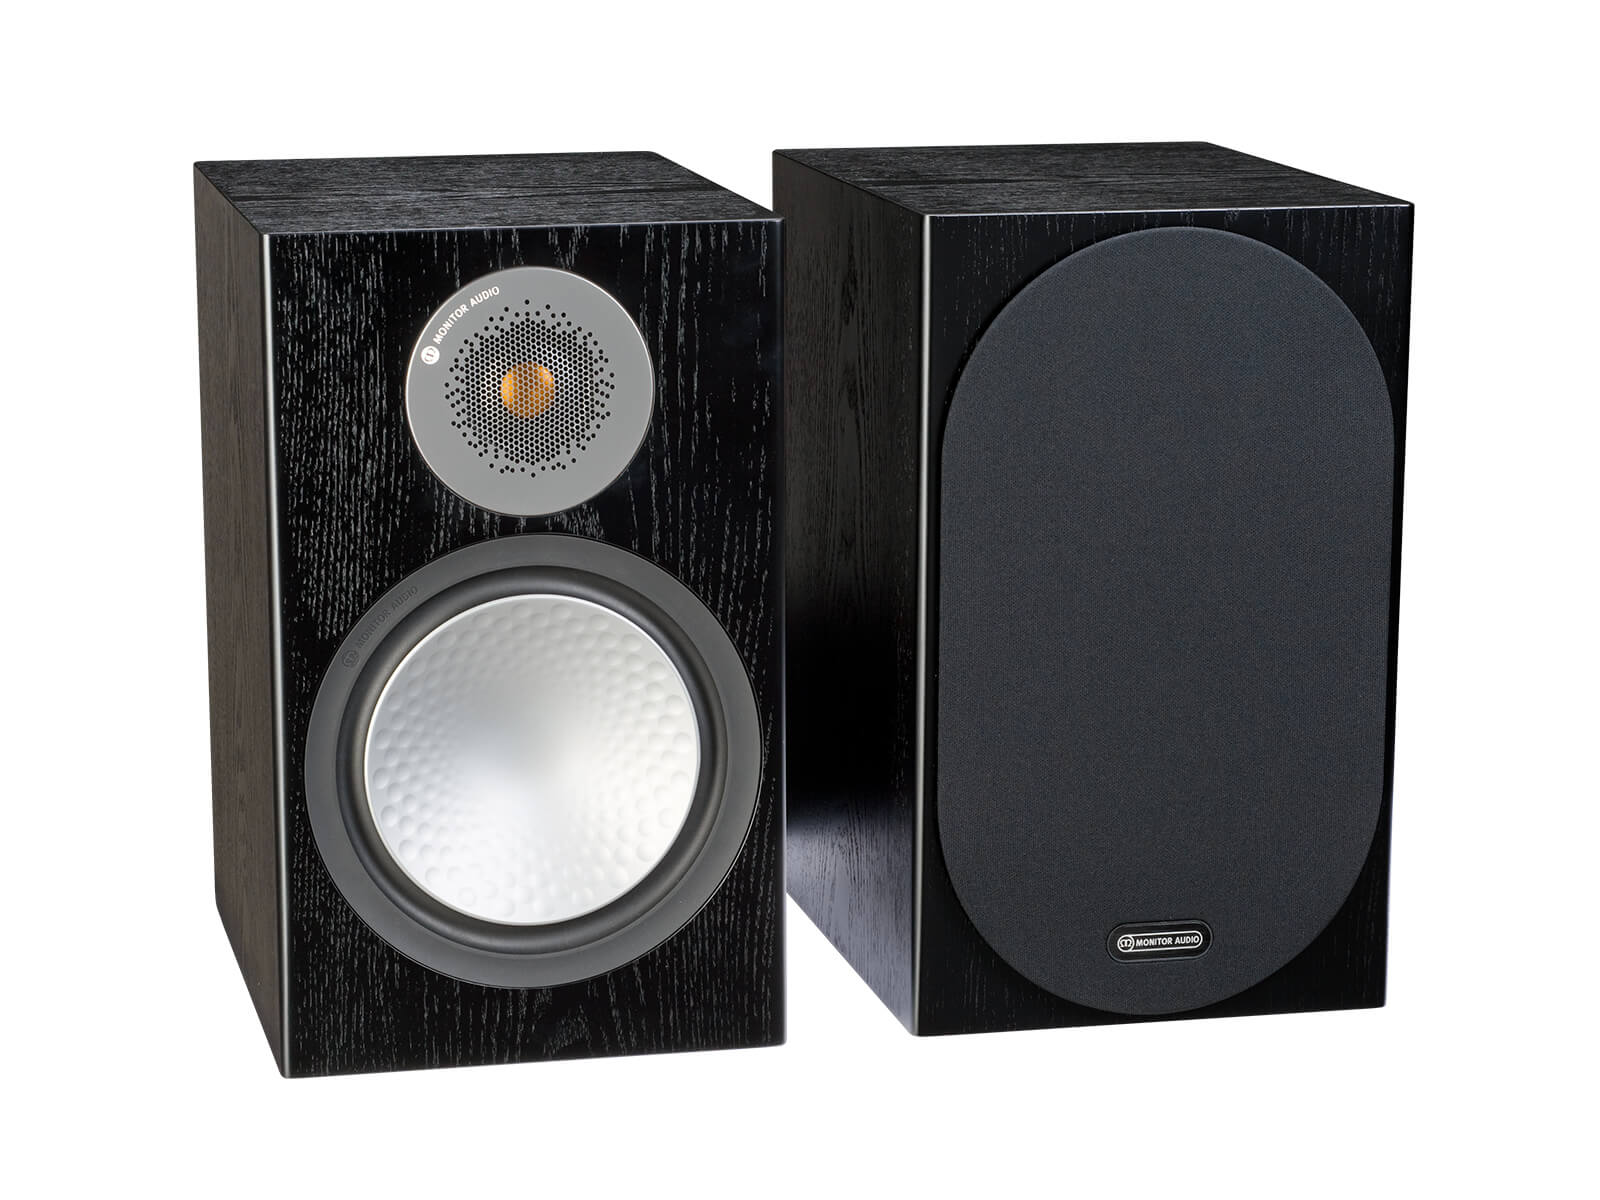 Silver 100, bookshelf speakers, with and without grille in a black oak finish.